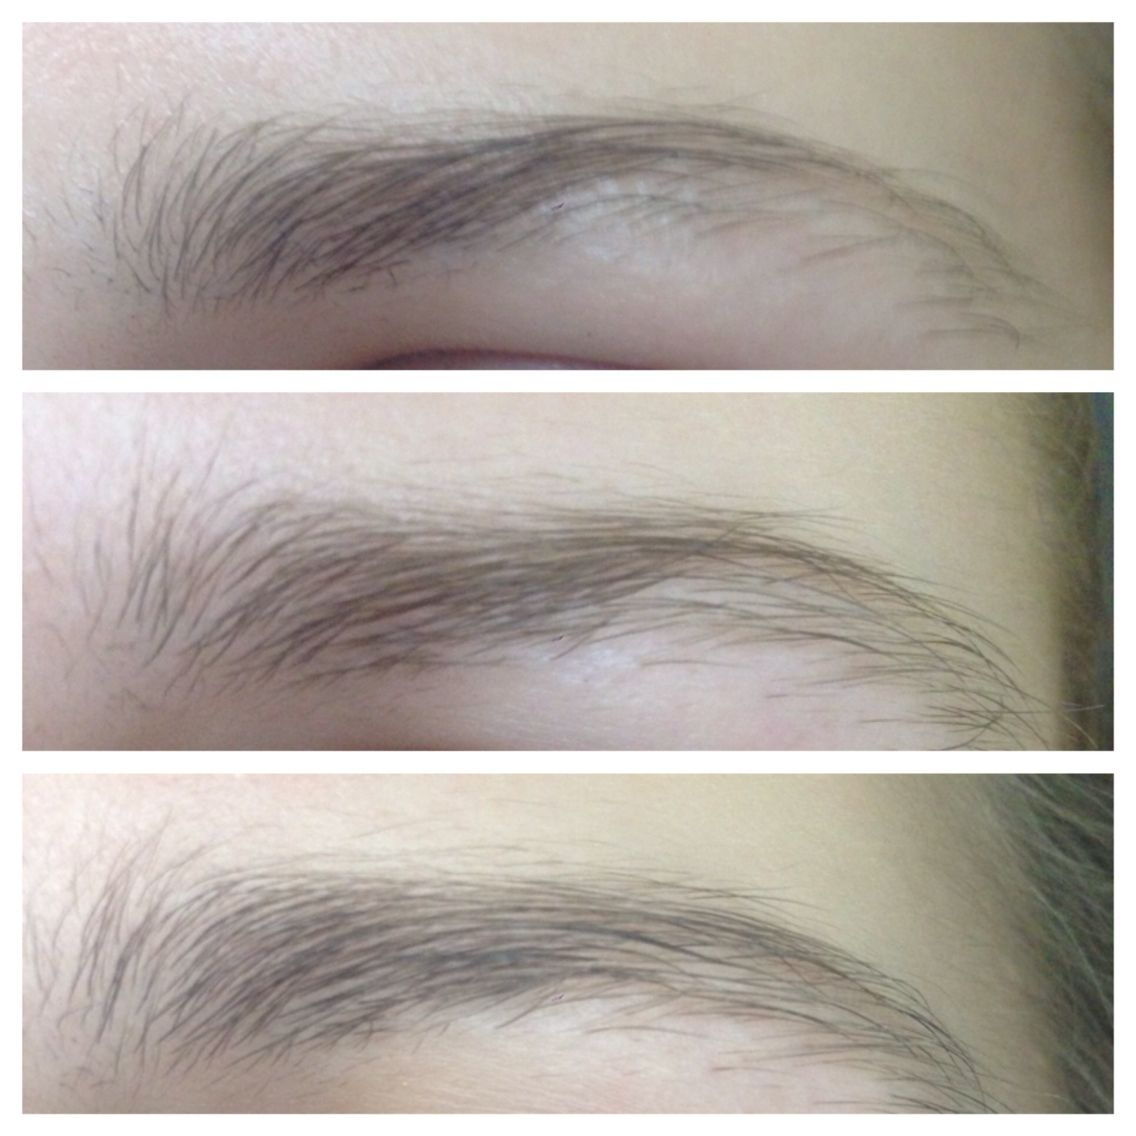 Eyebrow Growth Weeks After Using Castor Oil Mixed With Vaseline - Get thicker eye brows naturally eyebrow growing tips